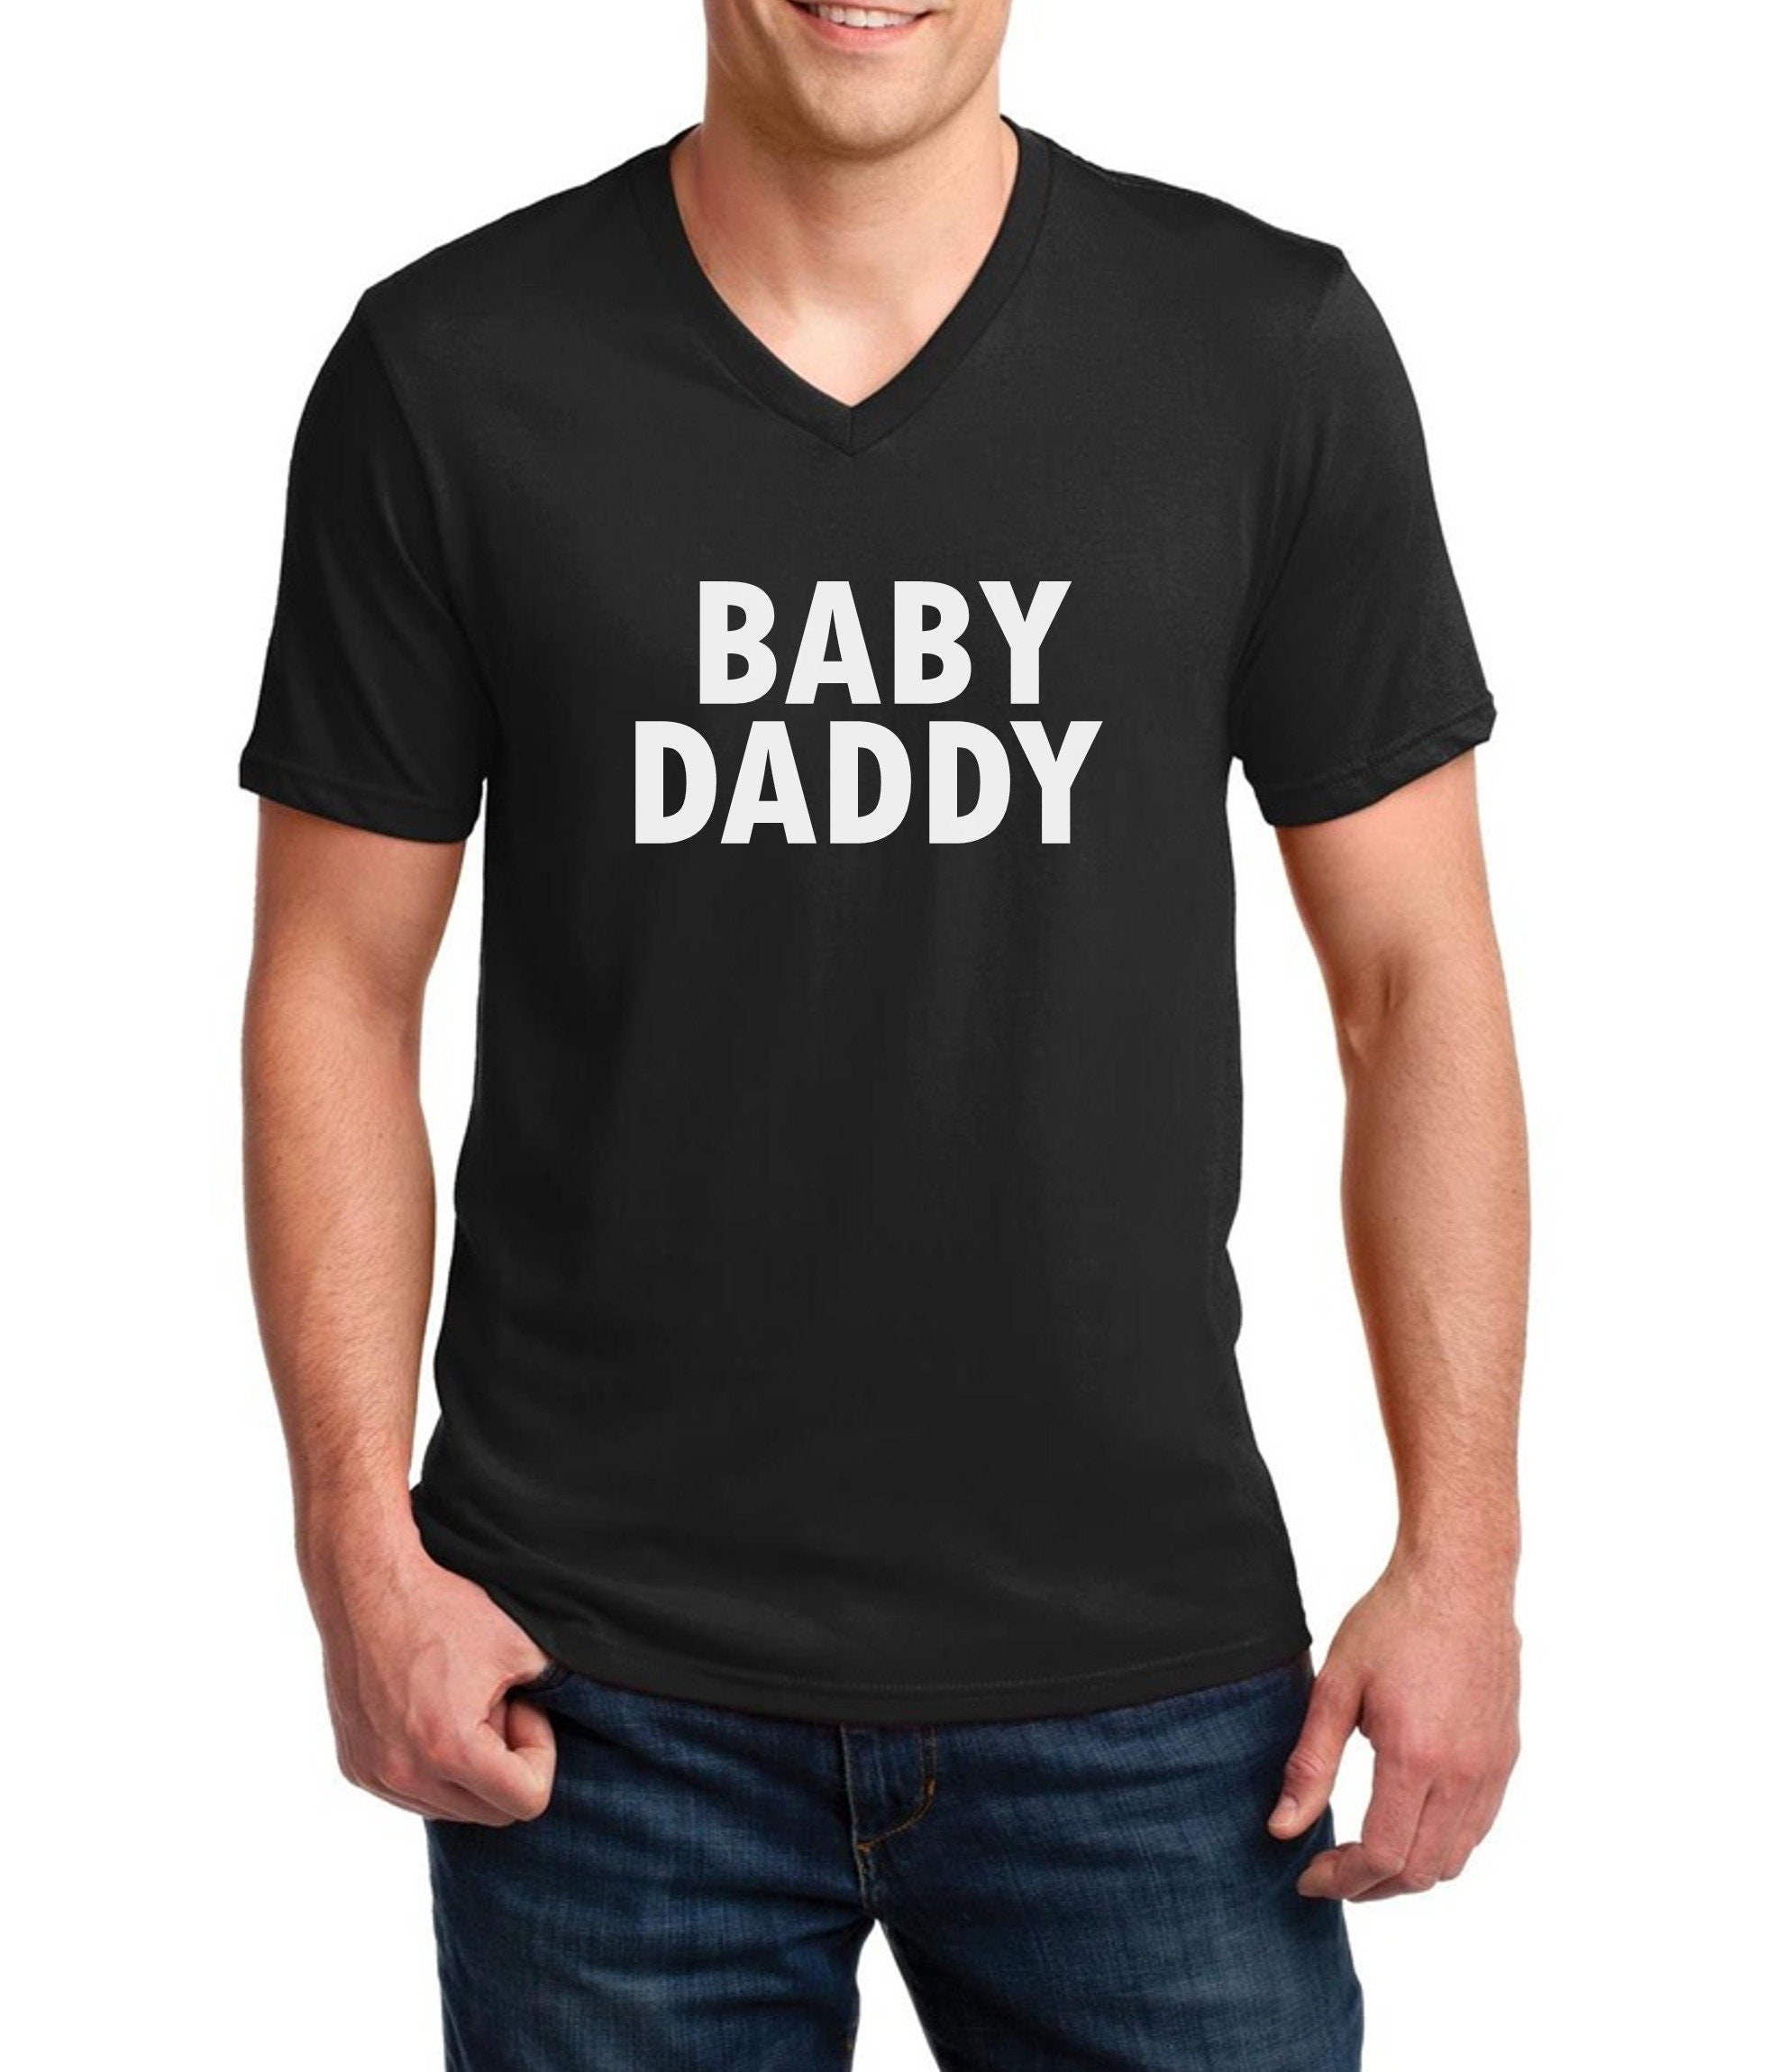 c51ca9ef1 ... T-Shirt - Funny Humor Tee - Father's Day Gift - Cool Dad. gallery photo  gallery photo